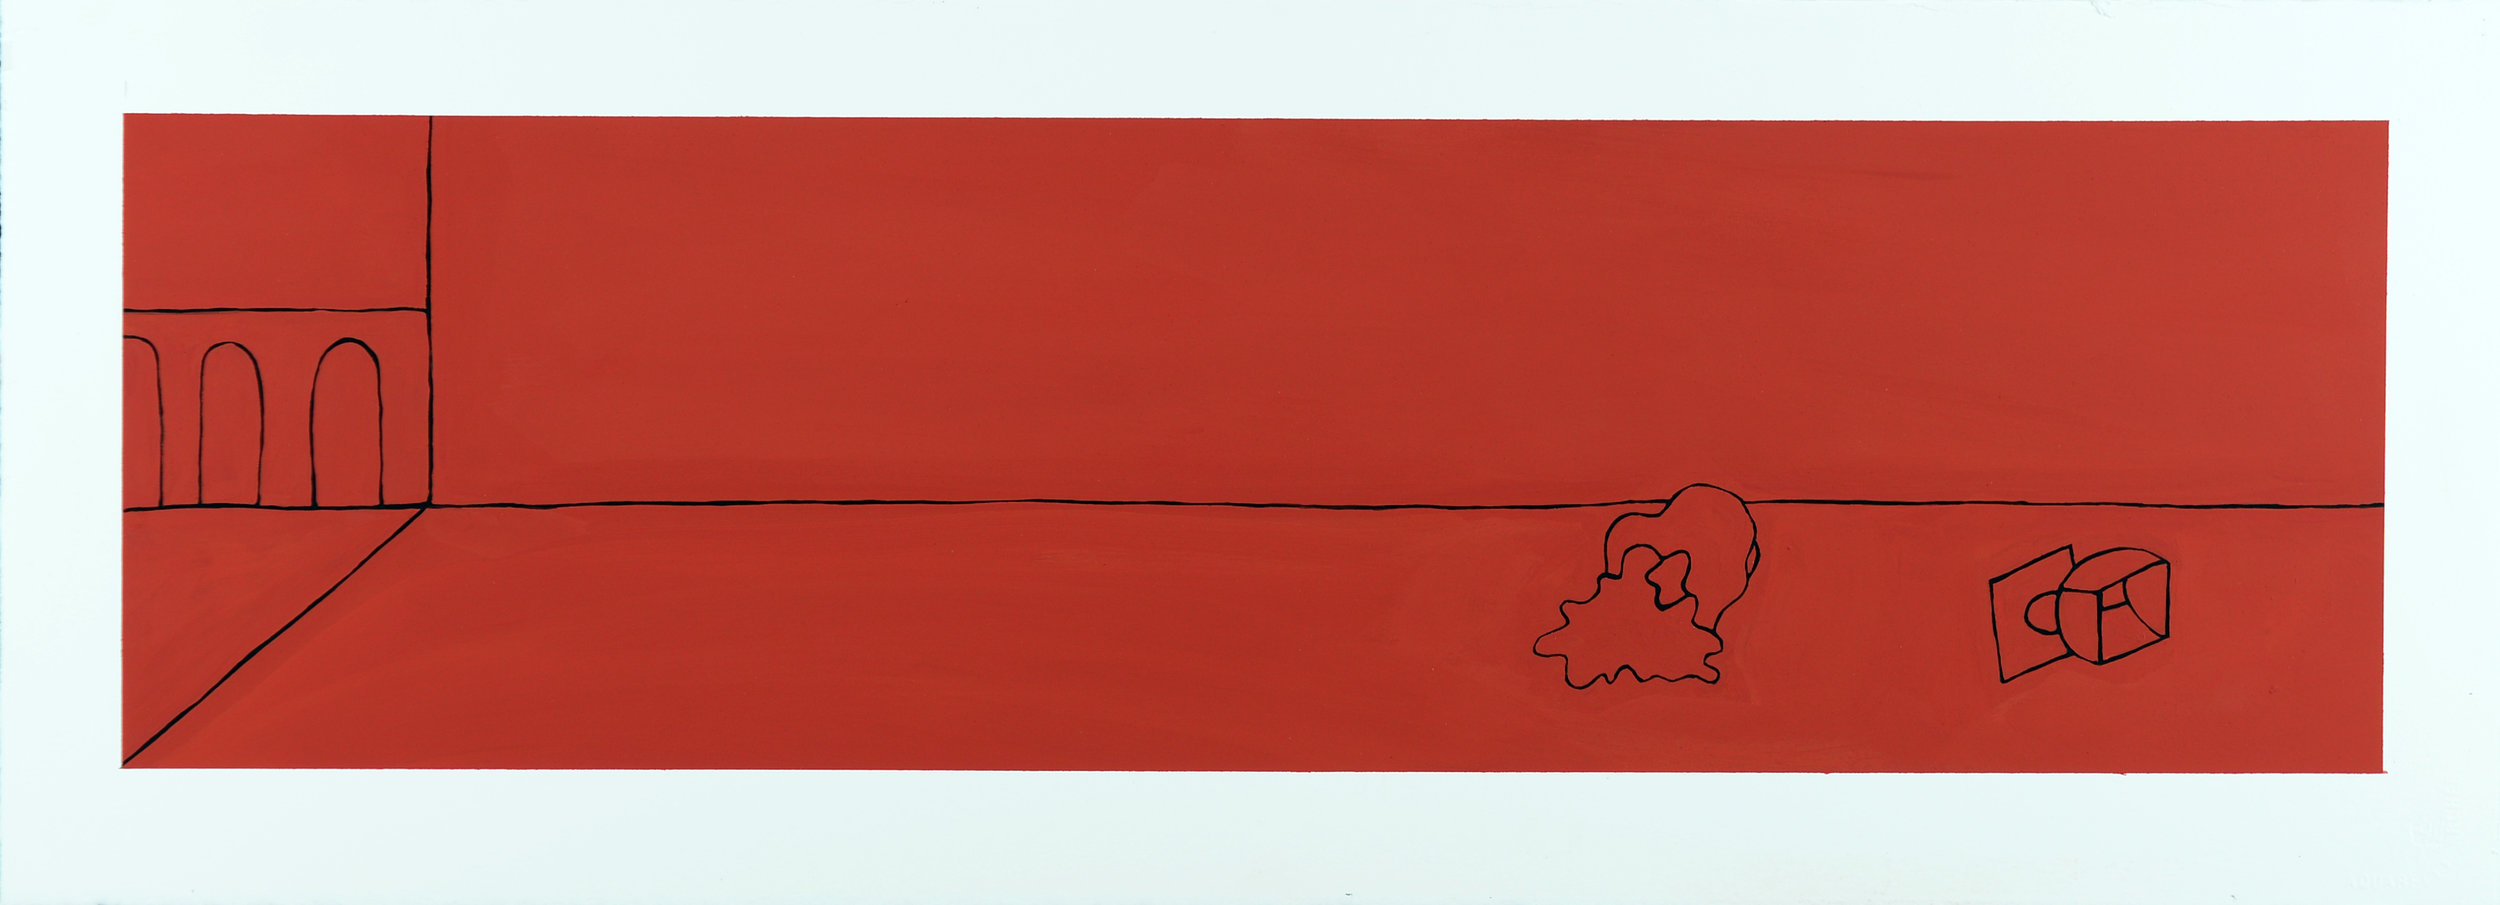 Monochrome Collective : Gary Kret : Would the Underworld be Red Series #4 : Casein on Paper : 8 x 27.5 : $2,600.jpg